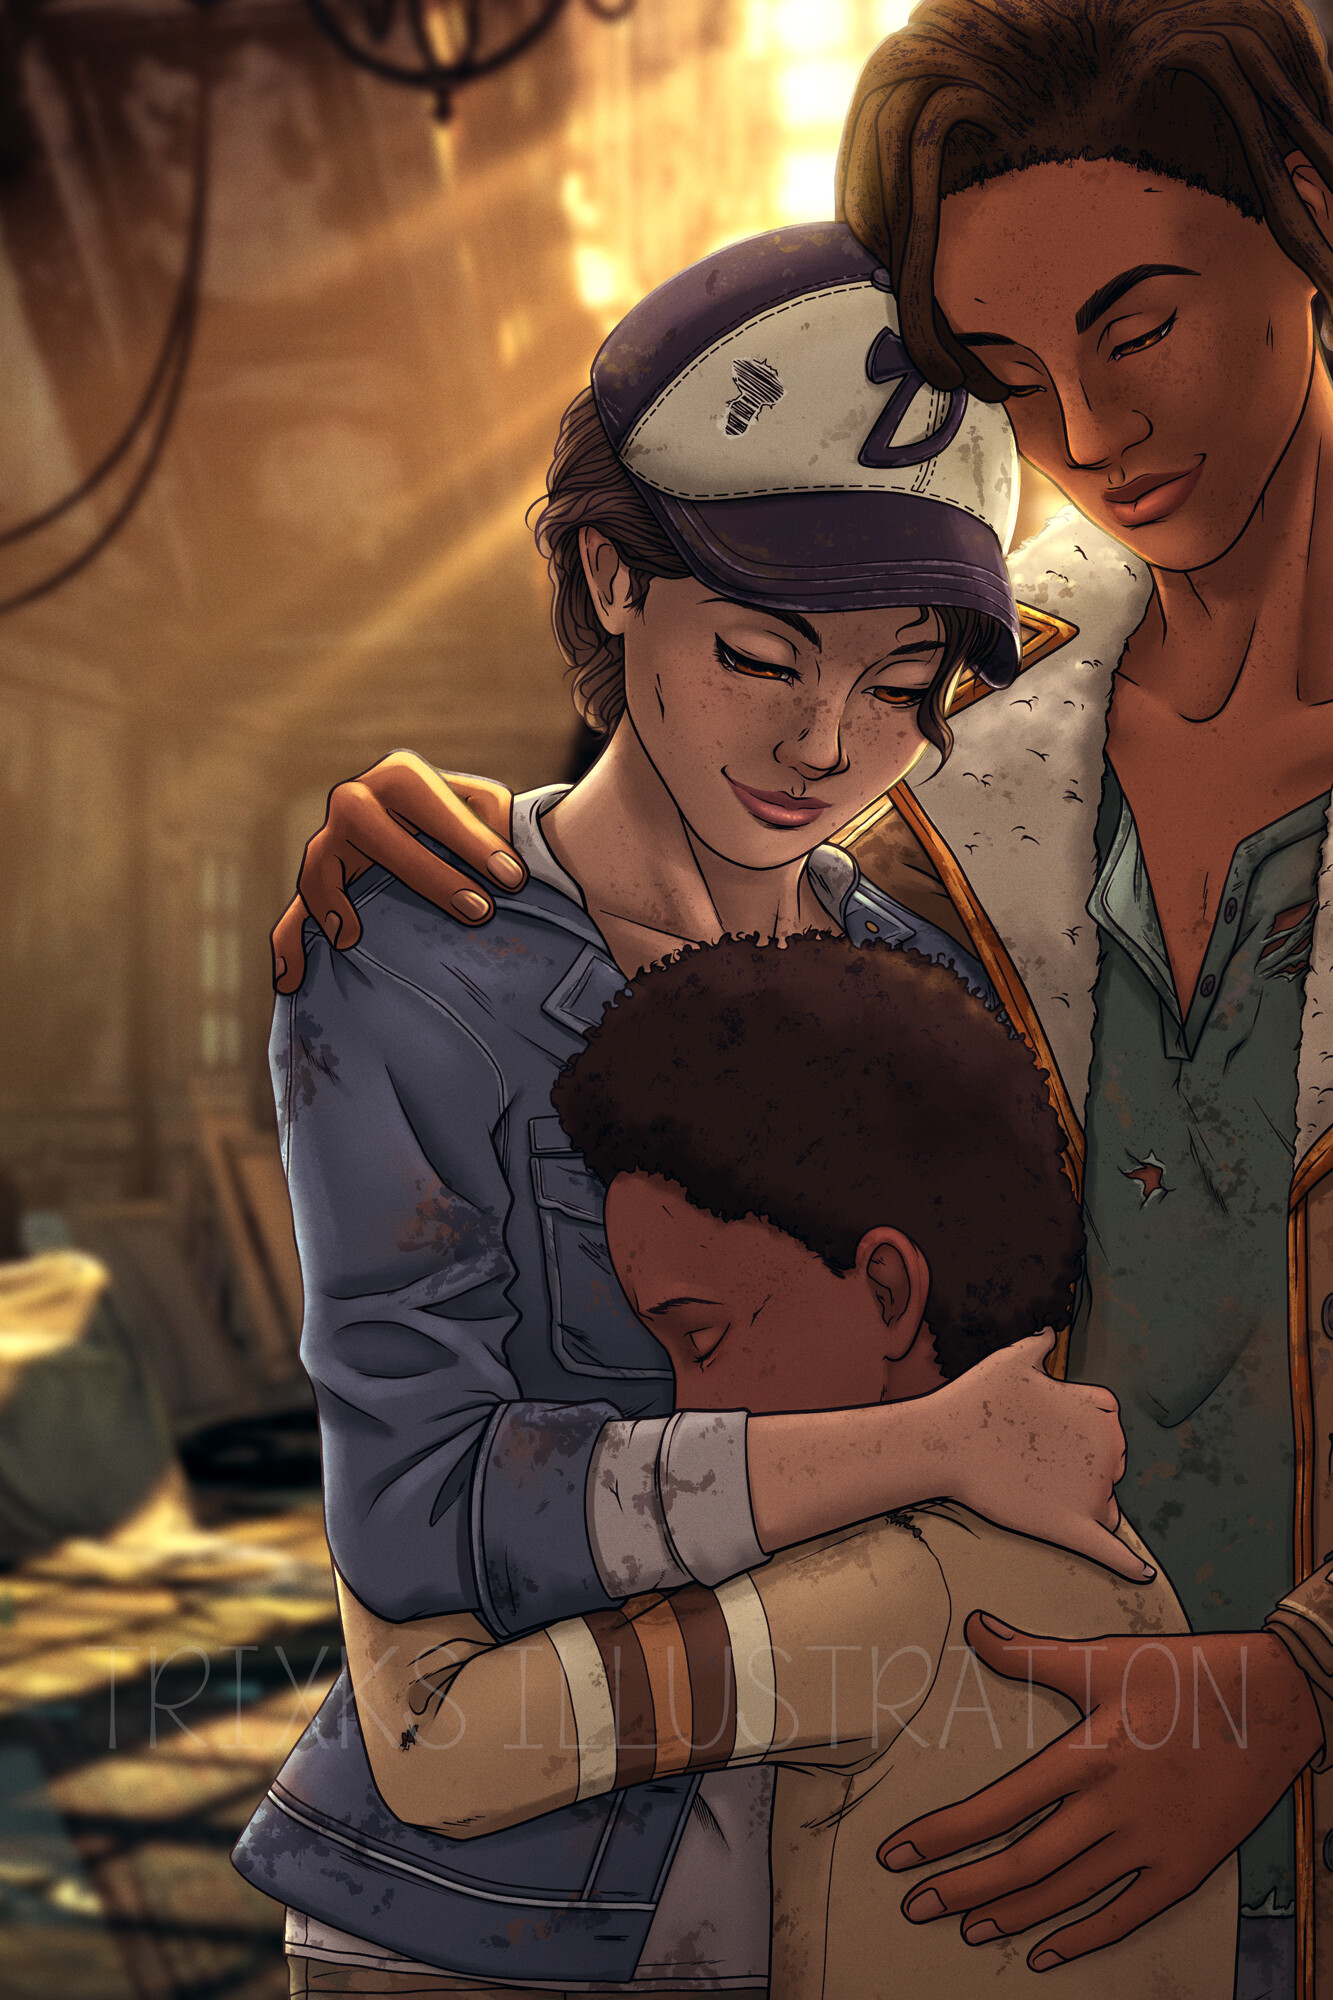 Trixks Illustration Clementine S Happy Ending Twd The